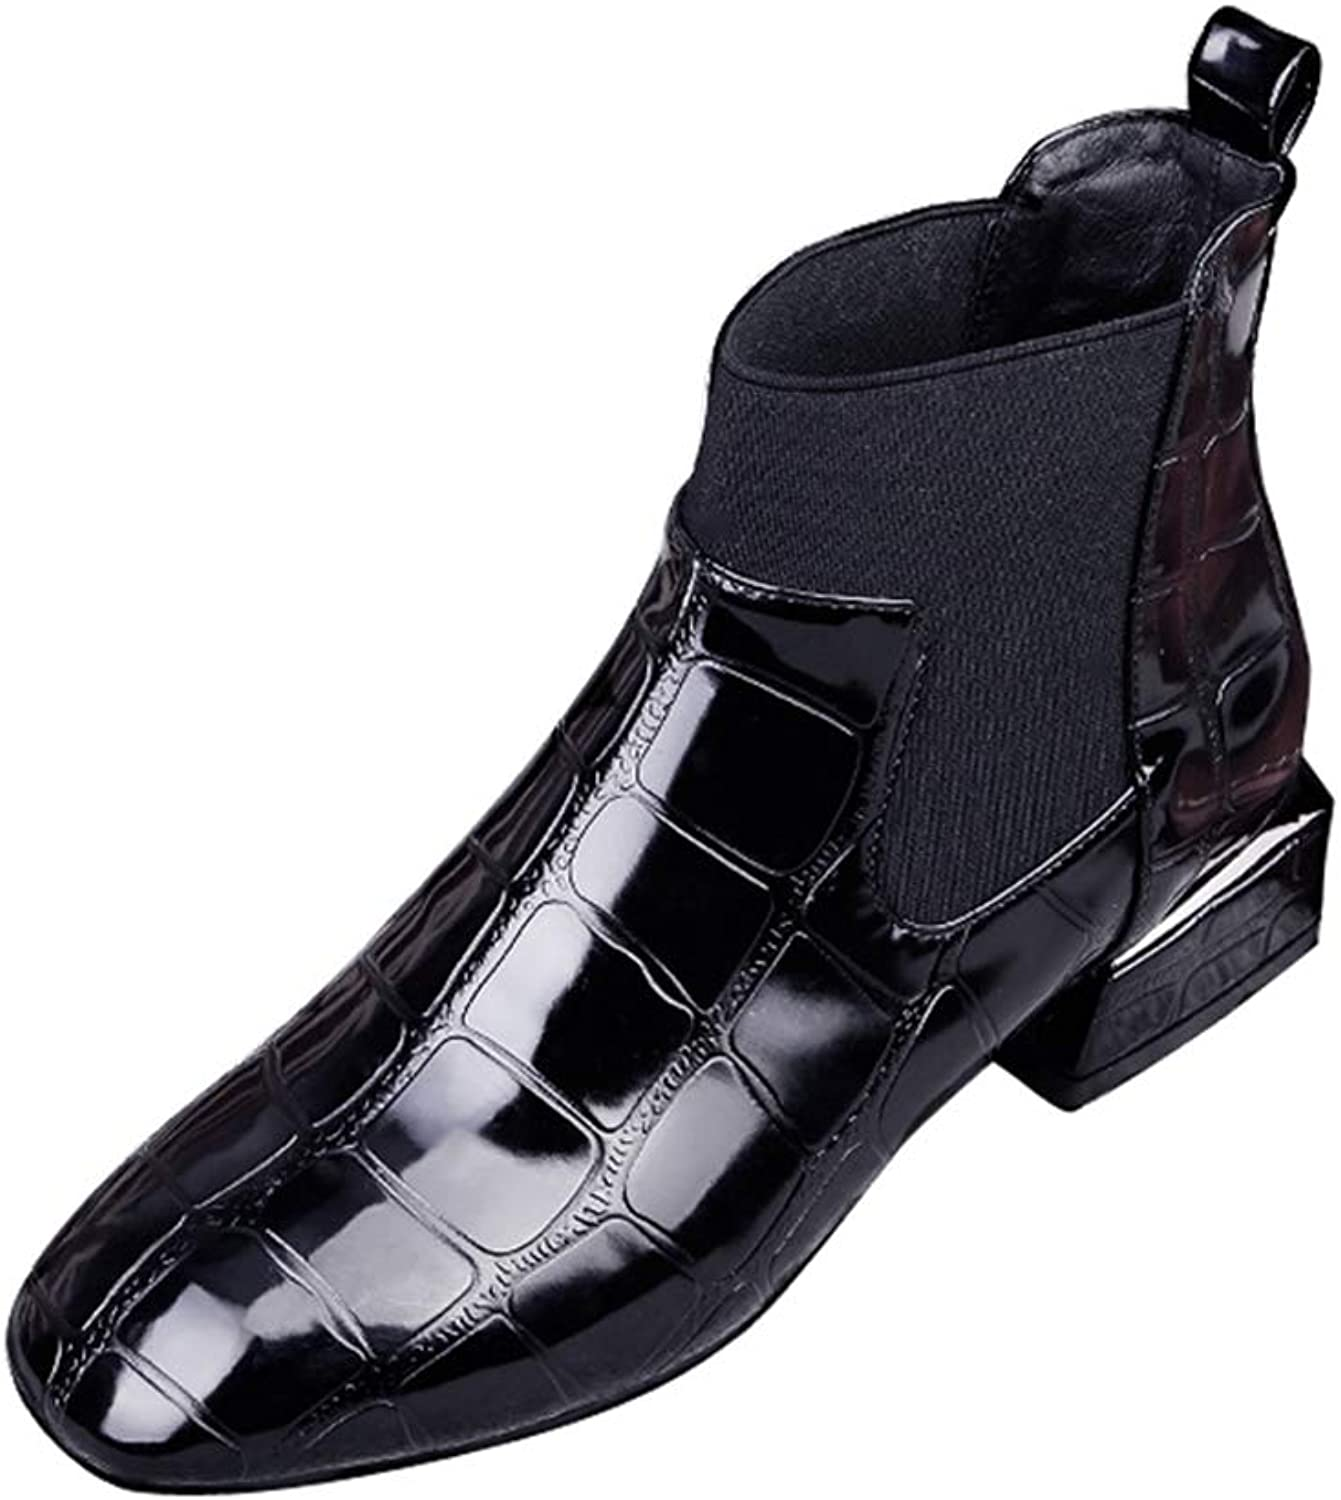 Hoxekle Women Fashion Ankle Boots Square Toe Low Square Heel PU Black Slip On Office Casual Short Boots